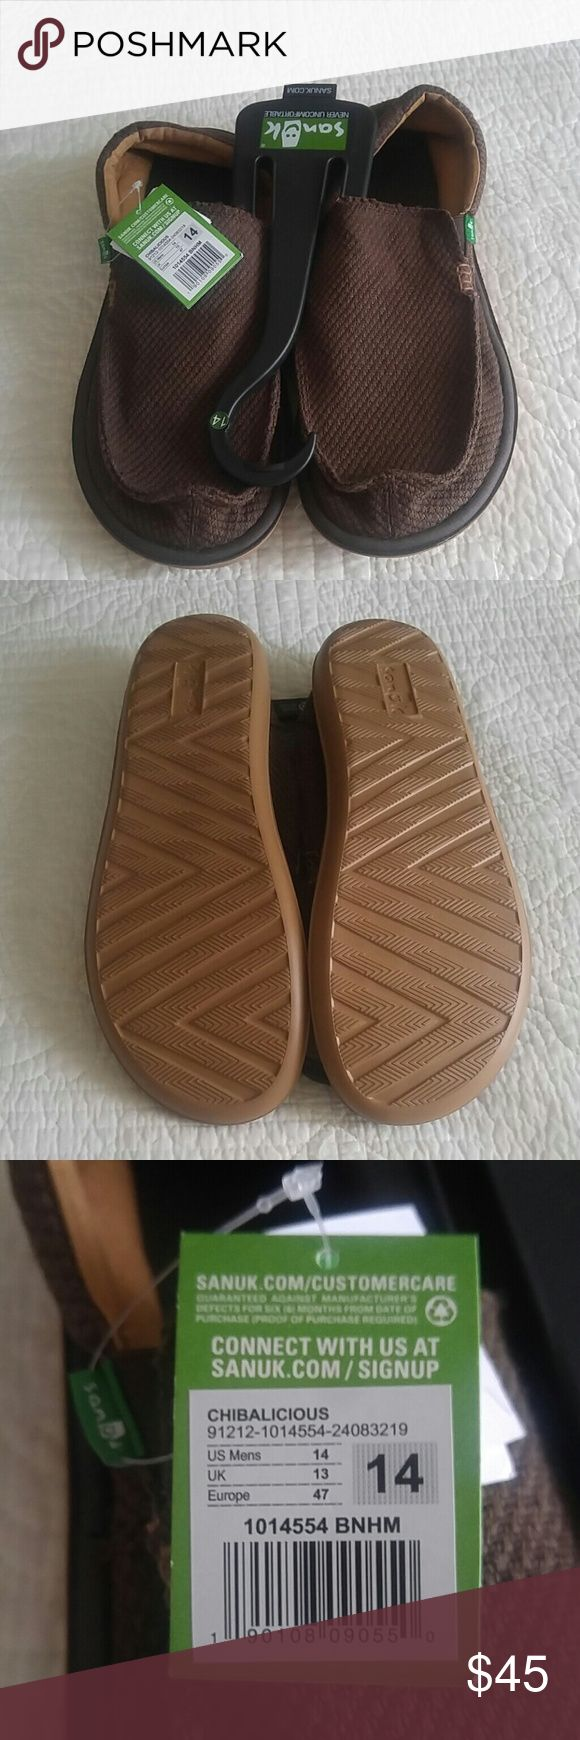 Sanuk Men's Size 14 NWT. Didn't fit and had too long to return. Sanuk Shoes Loafers & Slip-Ons